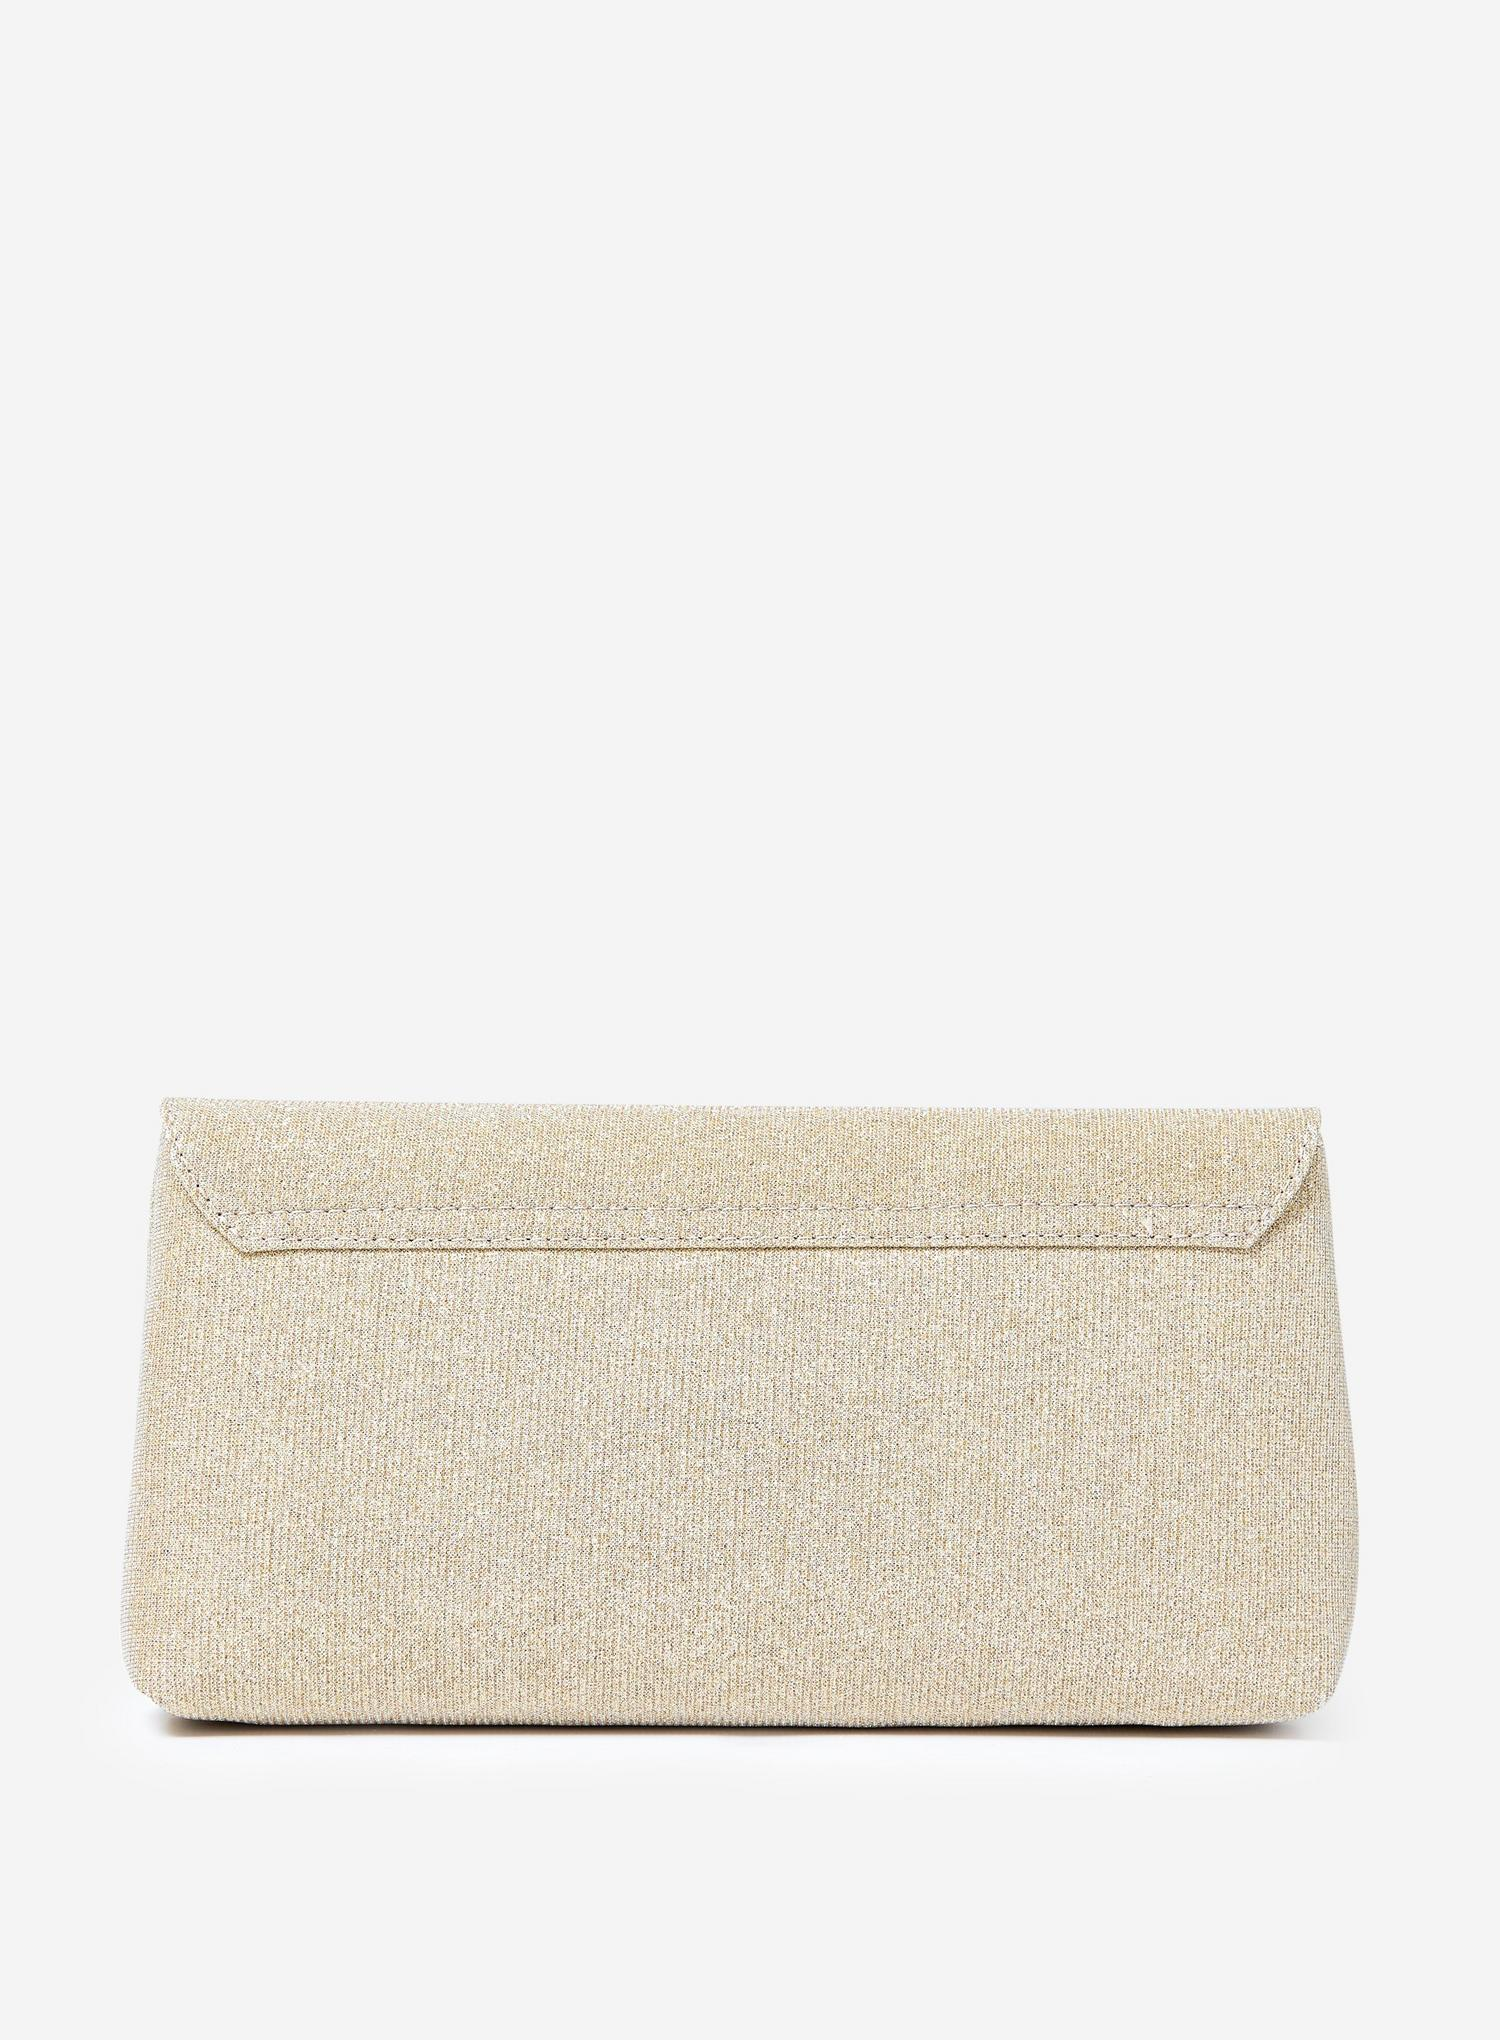 579 Gold Metal Side Bar Clutch Bag image number 3